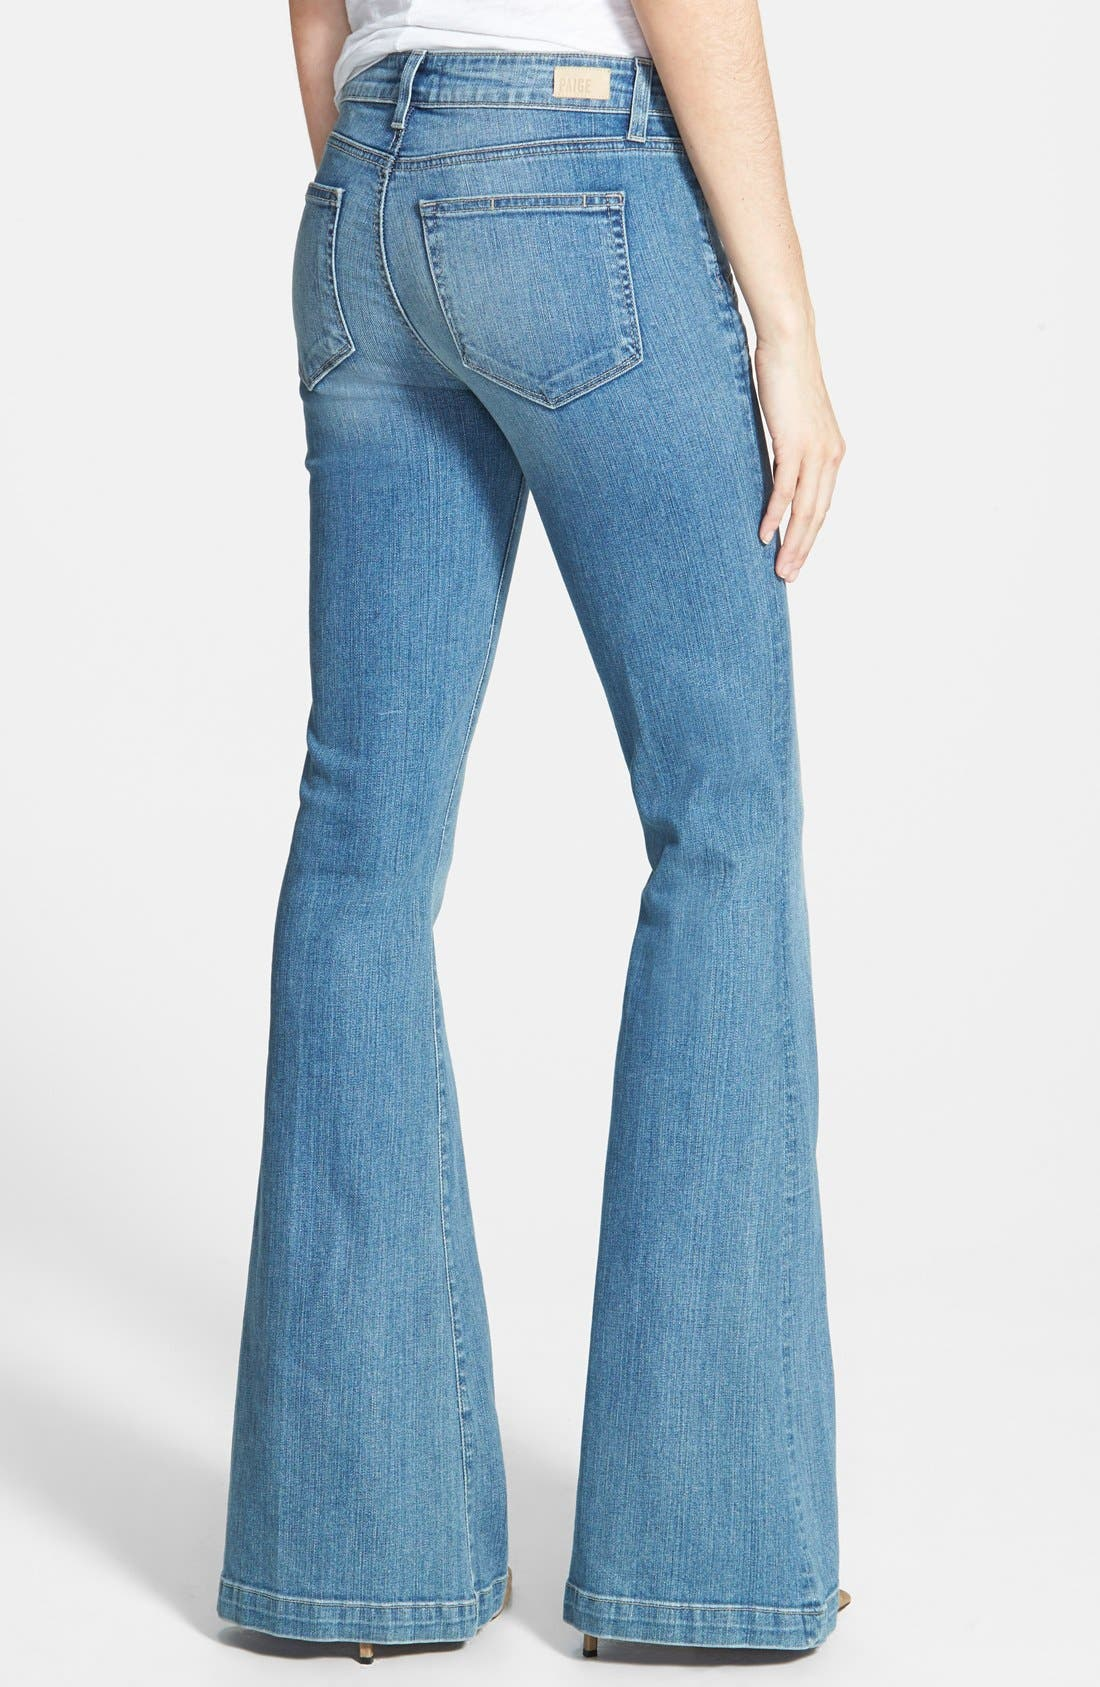 Denim 'Fionna' Flare Jeans,                             Alternate thumbnail 2, color,                             400